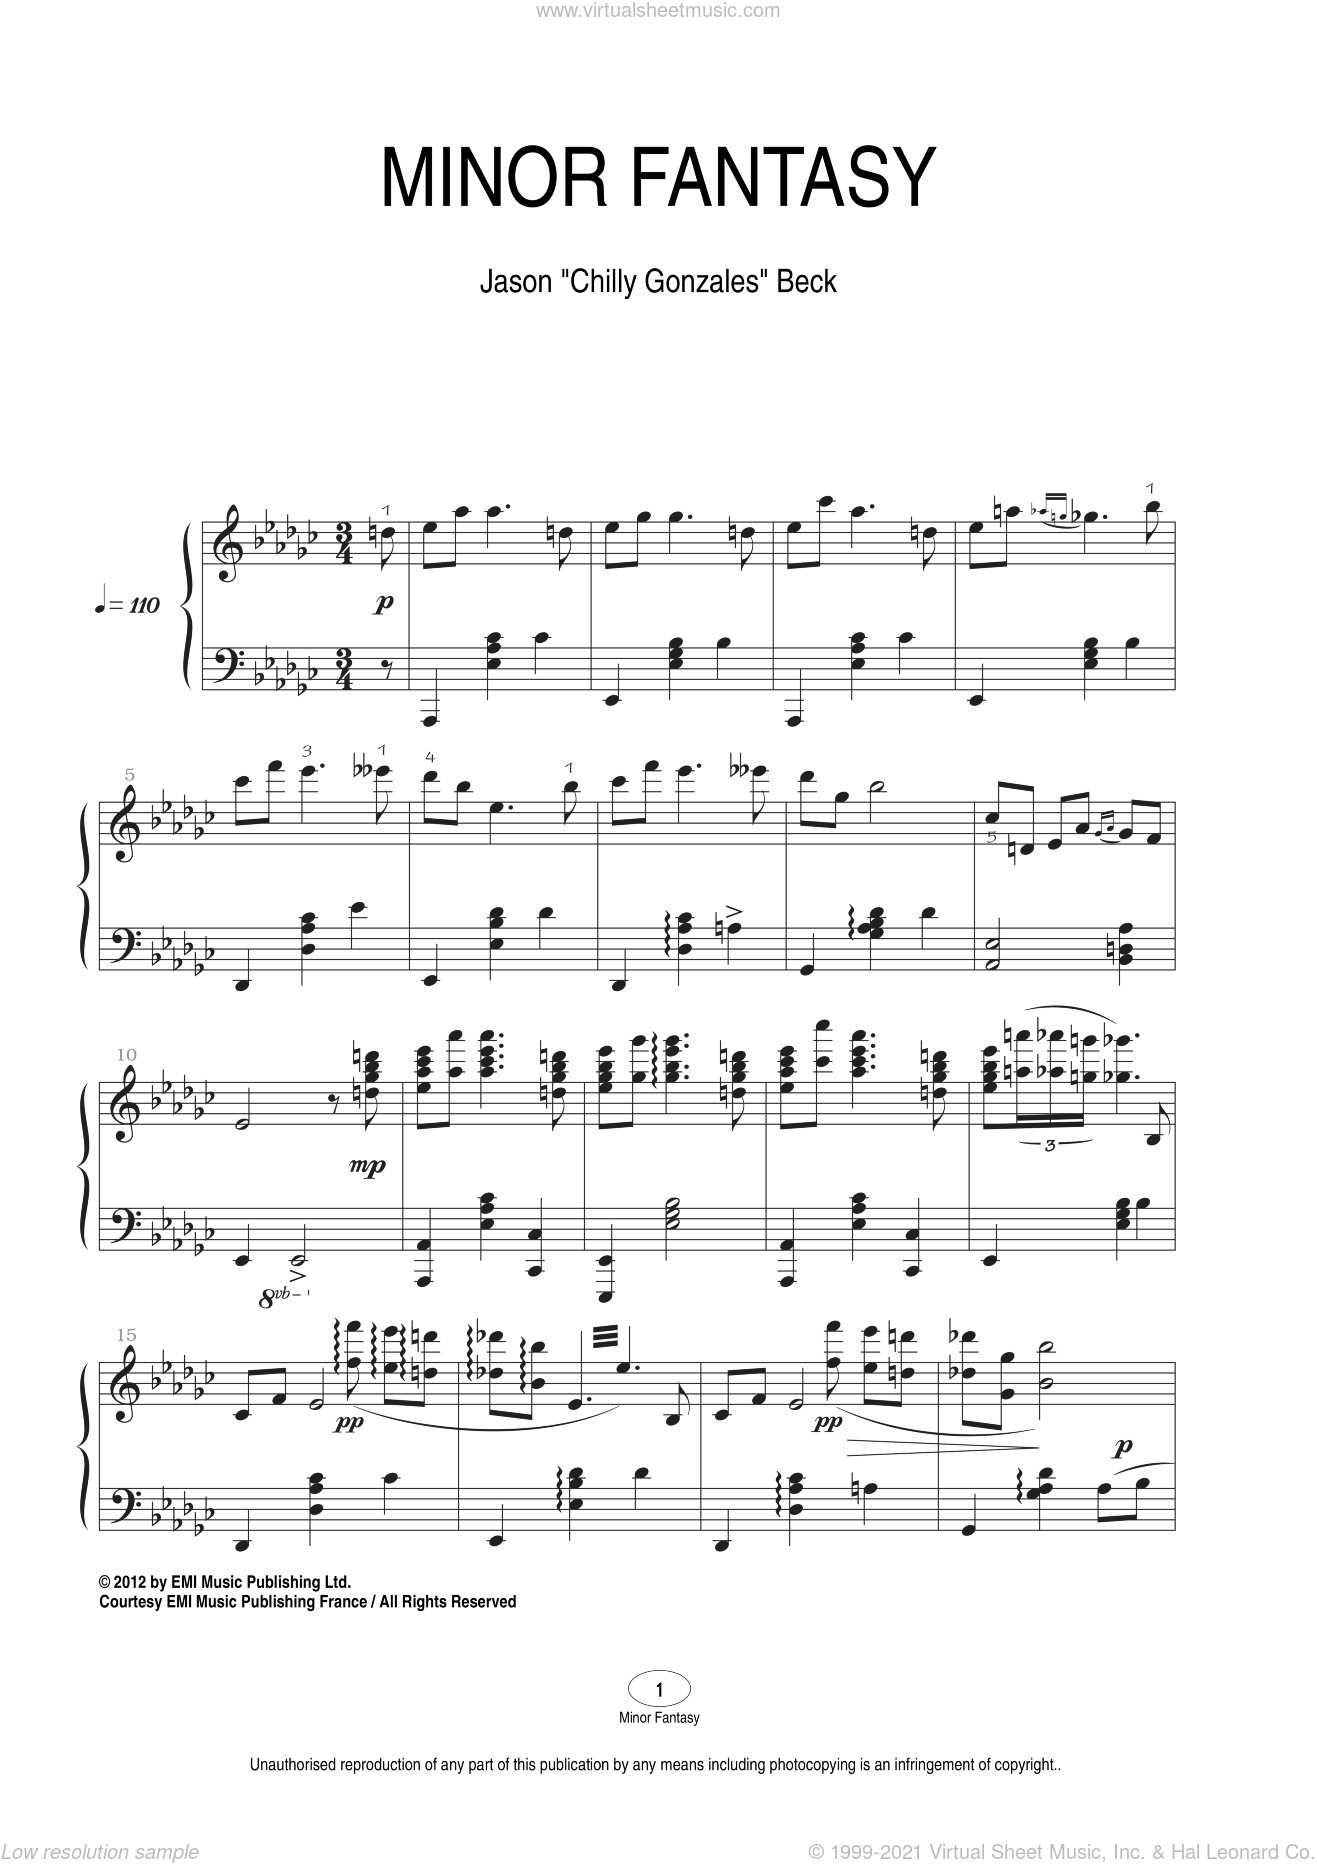 Minor Fantasy sheet music for piano solo by Chilly Gonzales